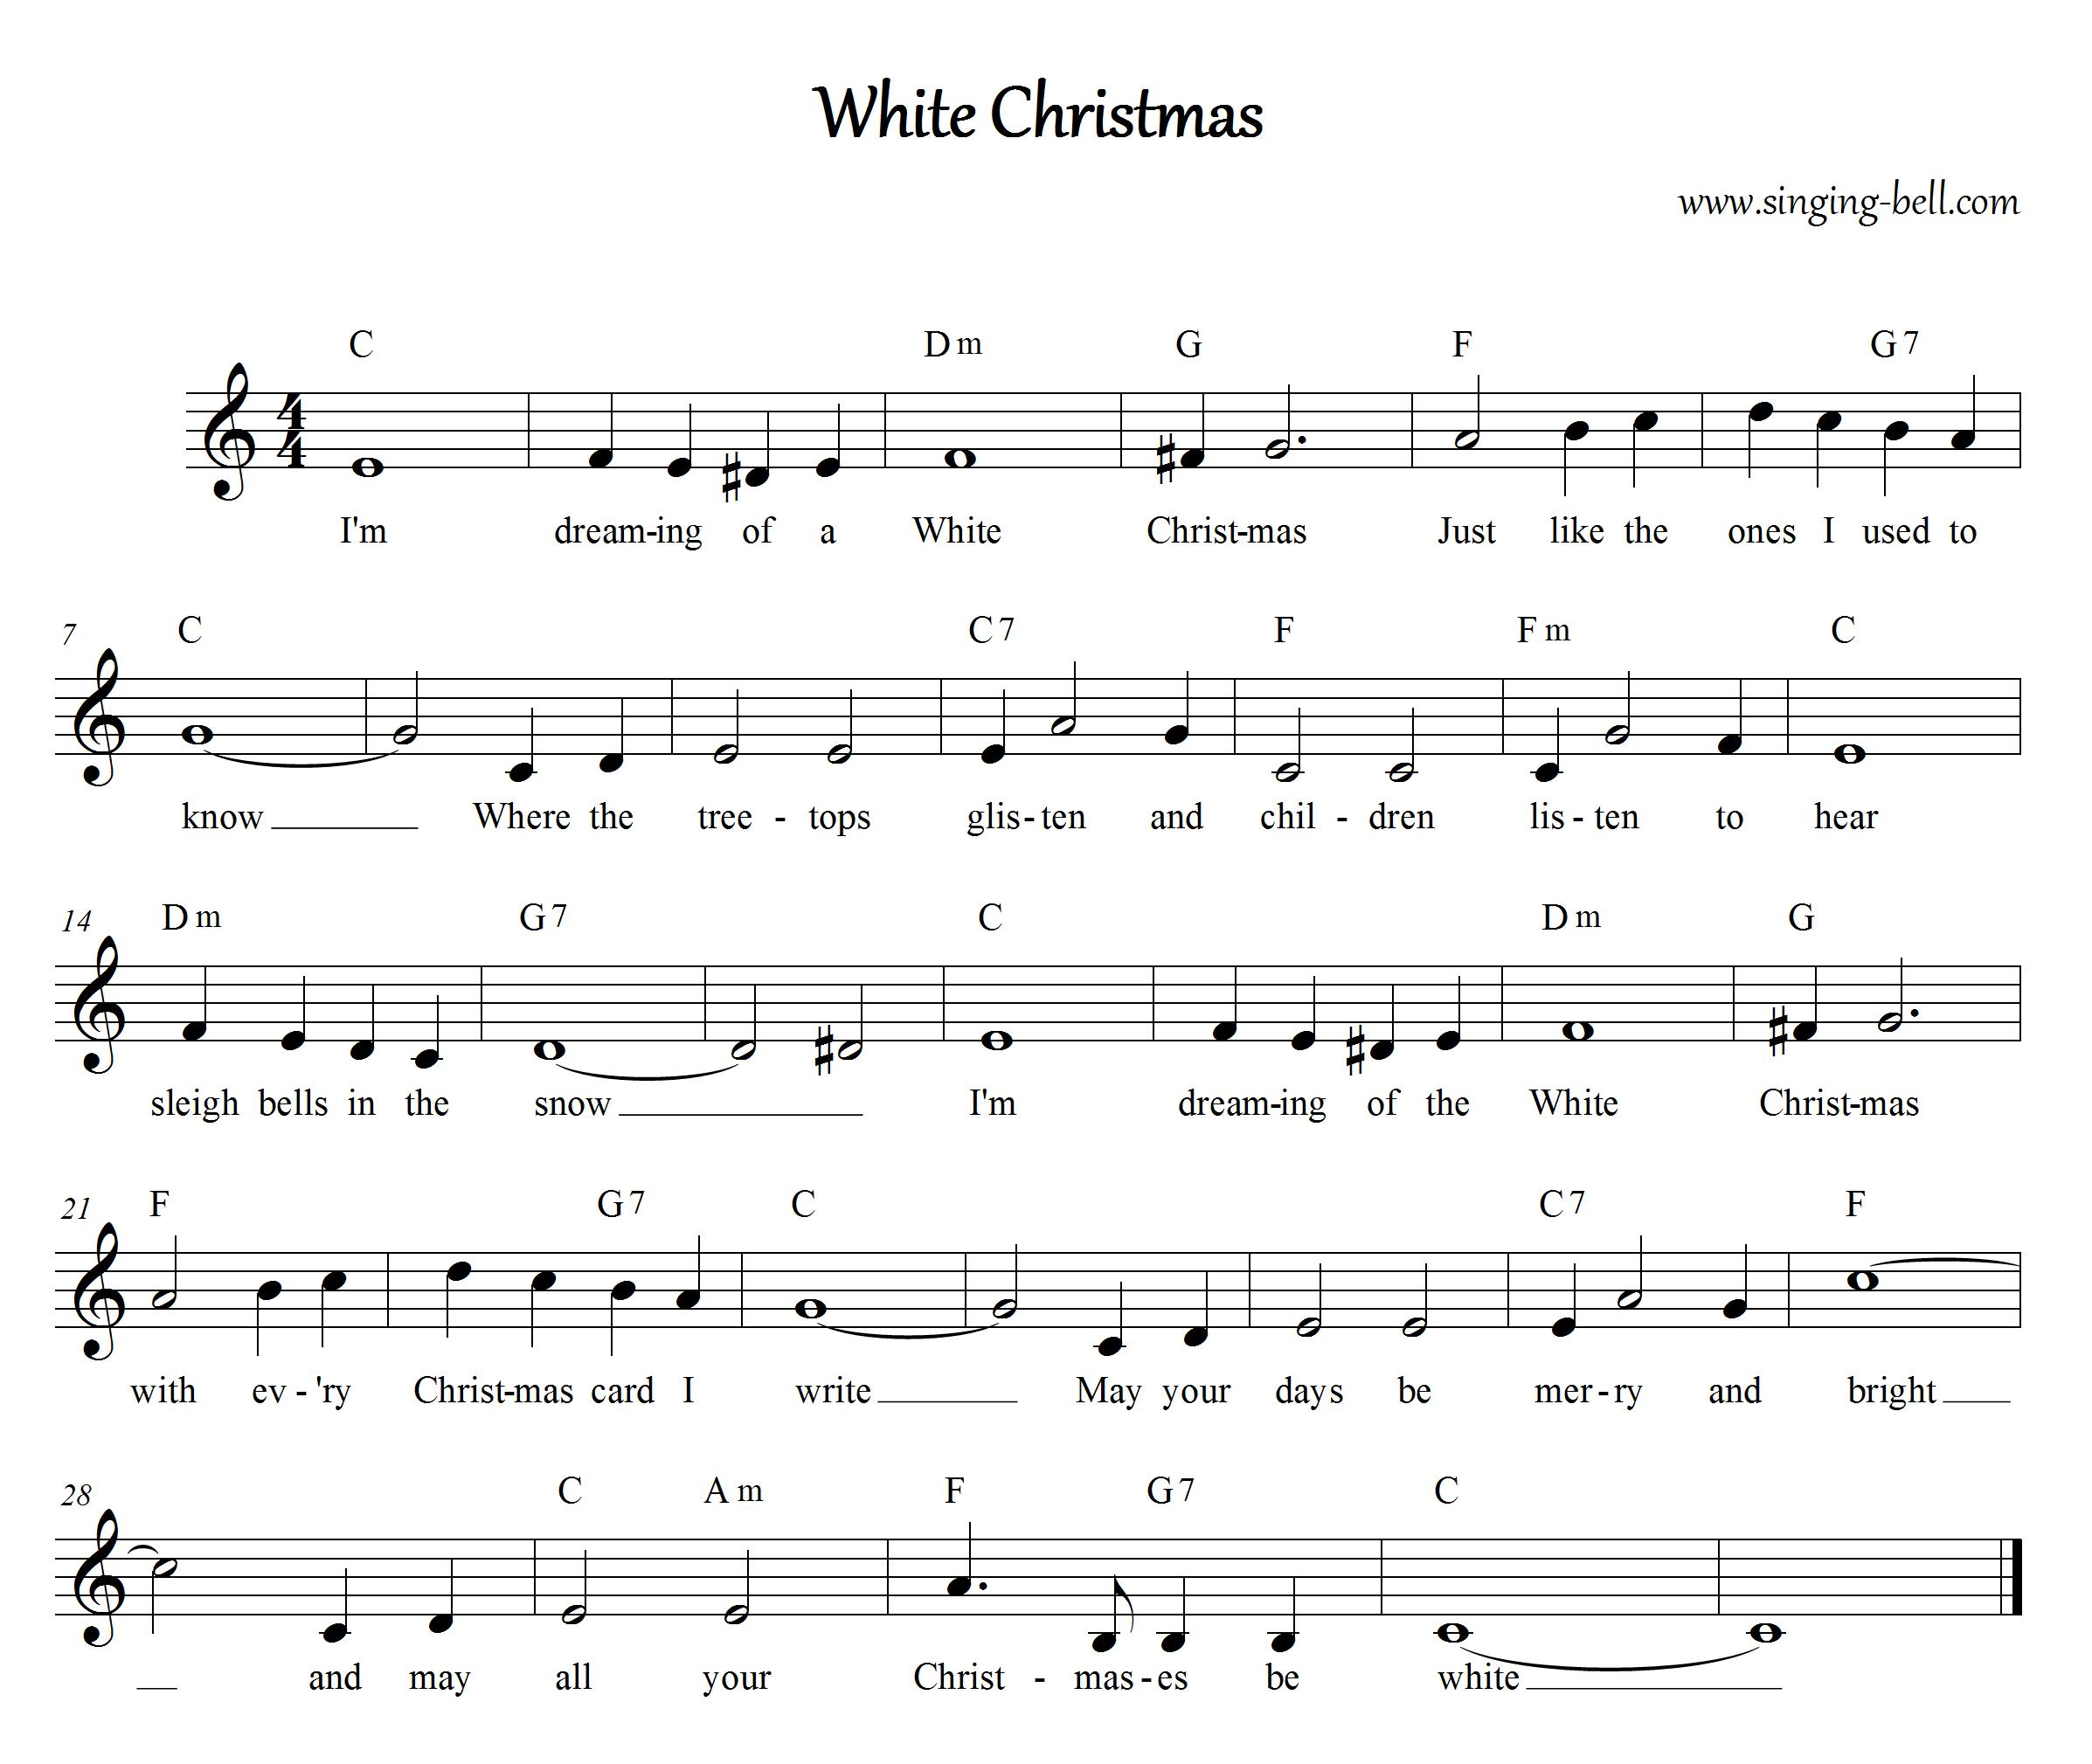 White Christmas Singing Bell